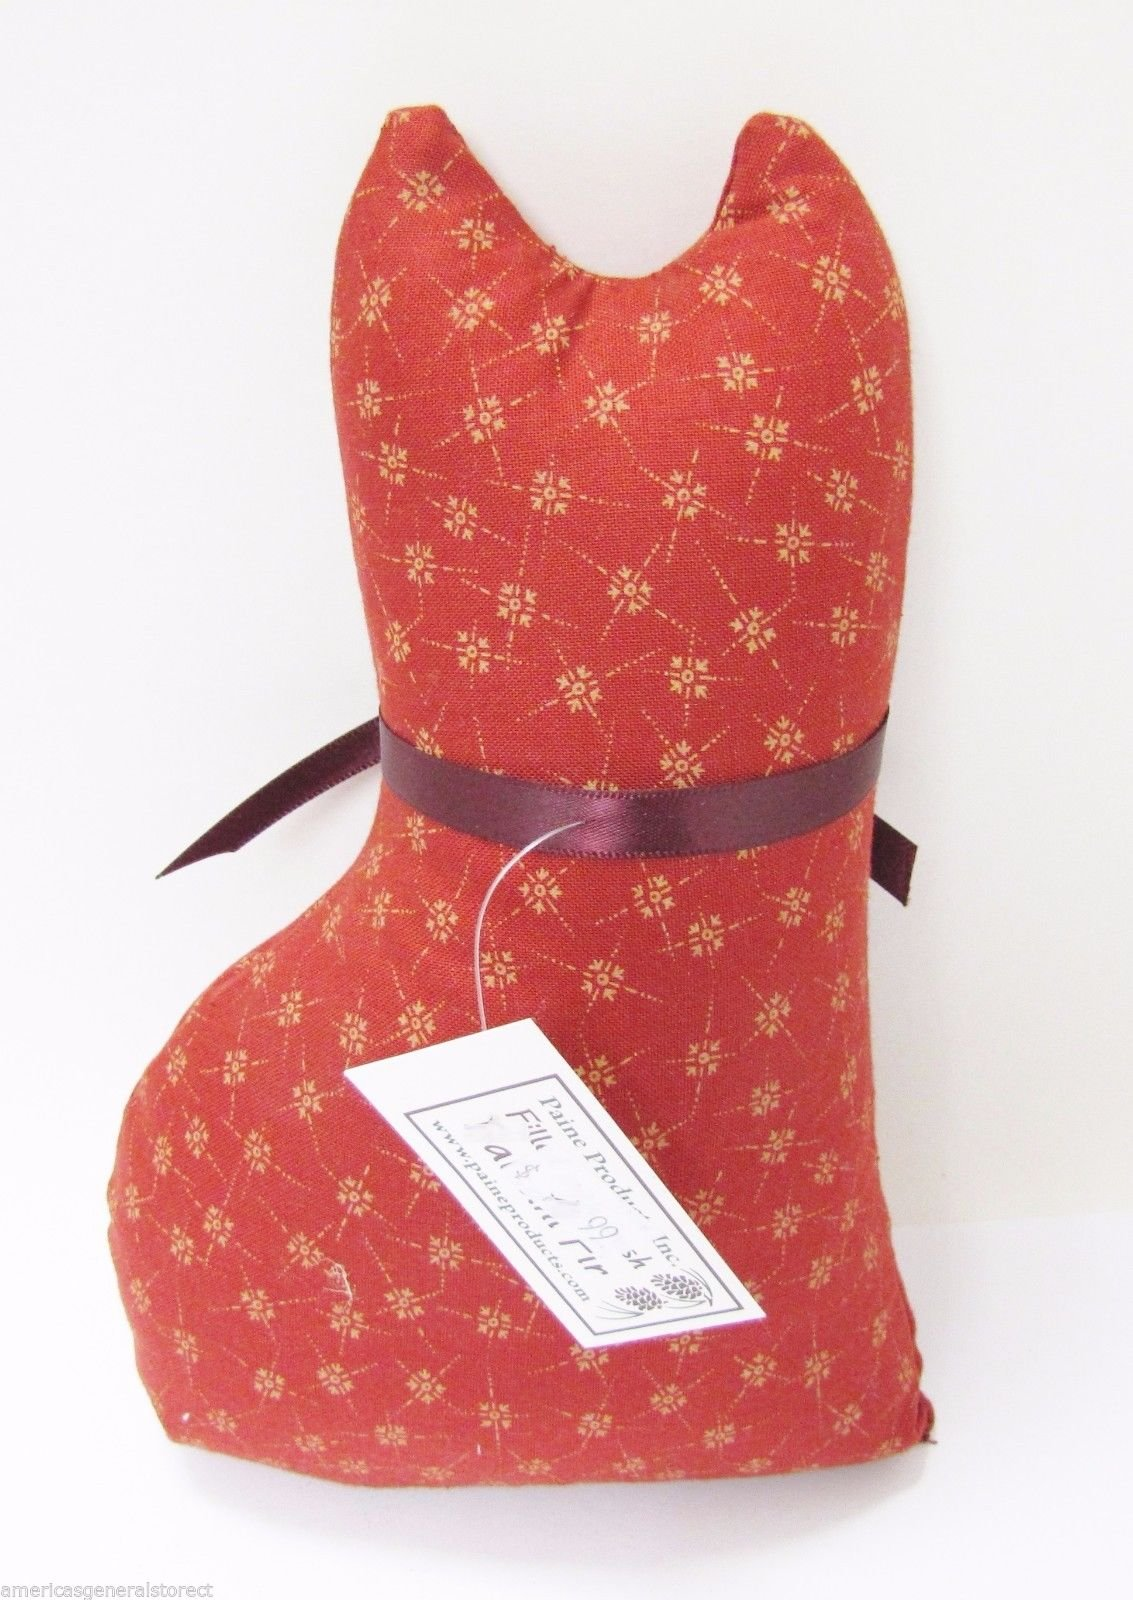 Paine's BALSAM FIR PILLOW 8''x4.5'' CAT SHAPE pine tree sachet scent RUSTY RED by Paine's (Image #2)